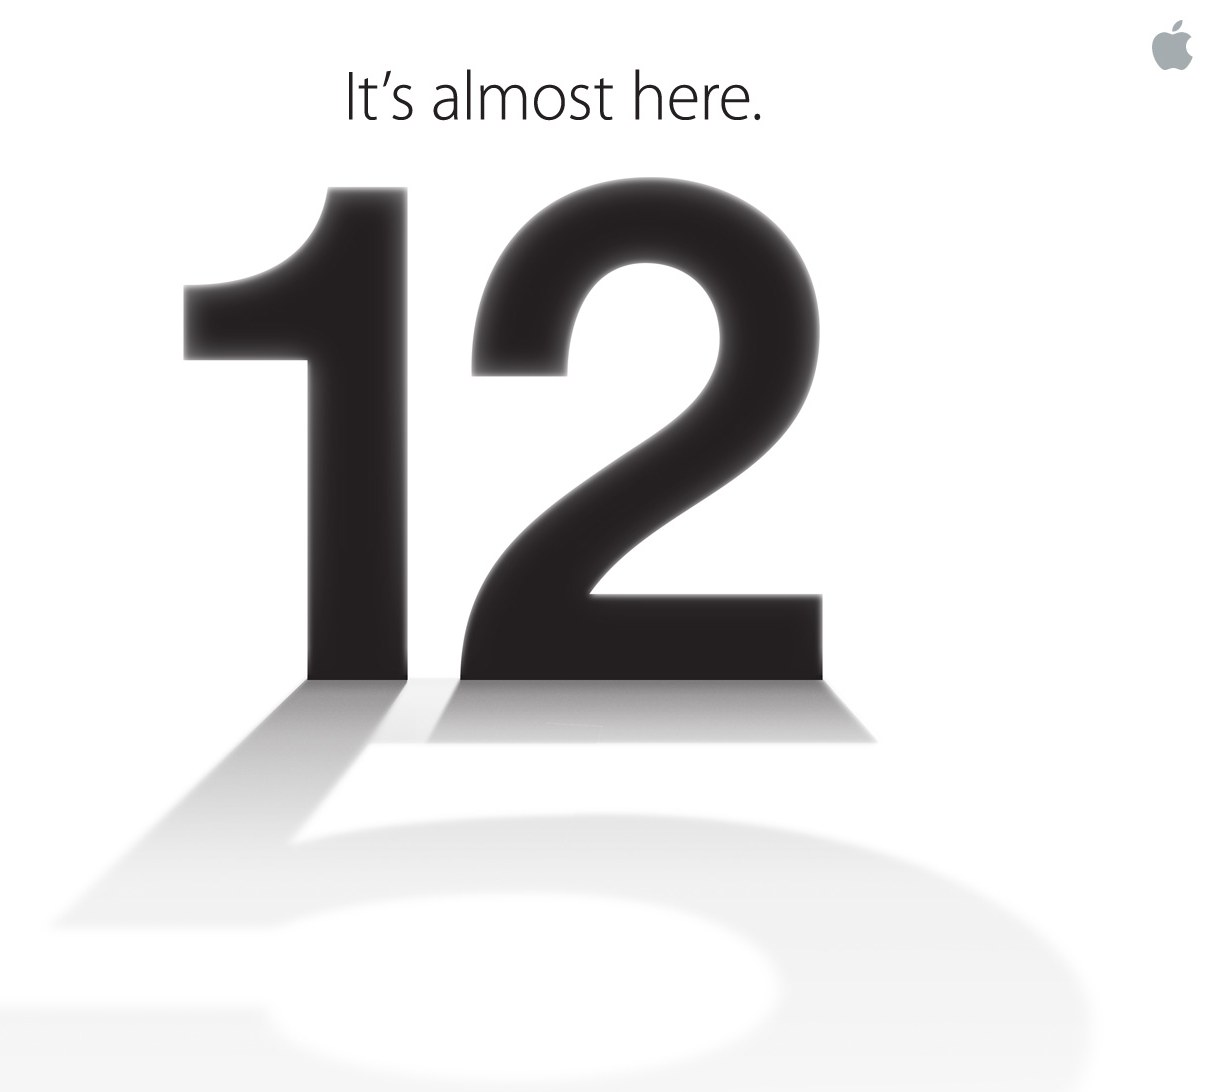 iPhone 5 Announcement Date Official – September 12, 2012